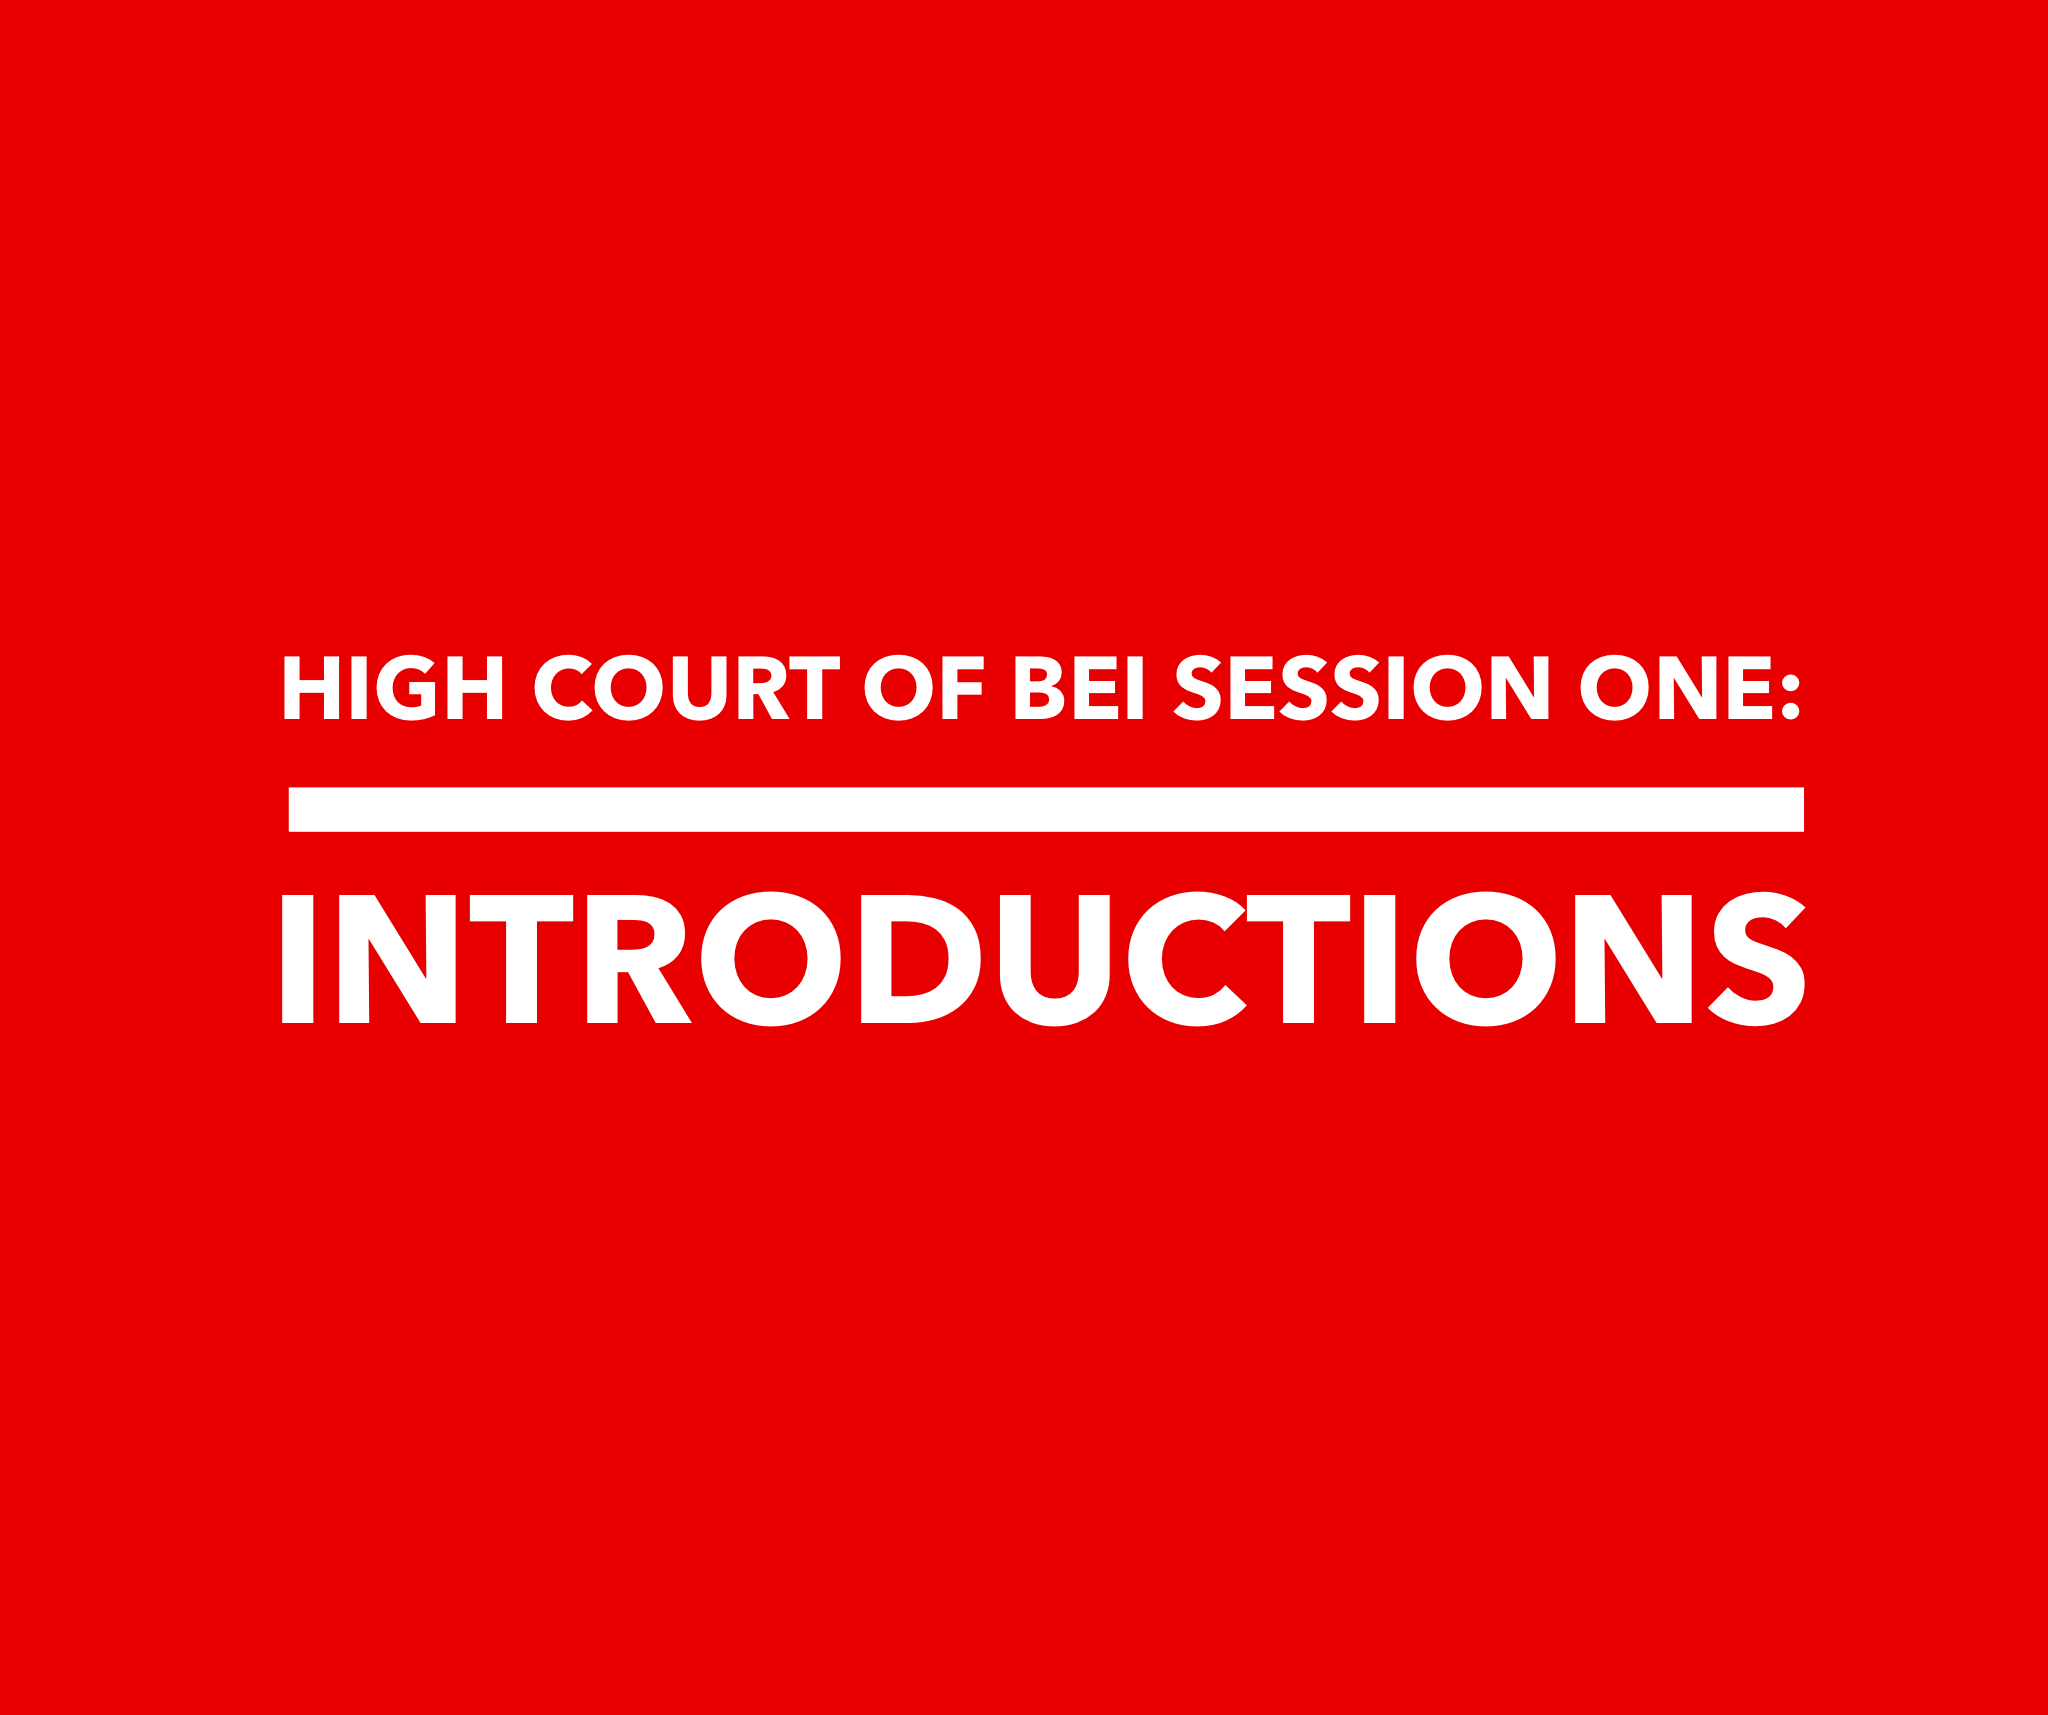 The High Court of Bei Session #1: Introduction